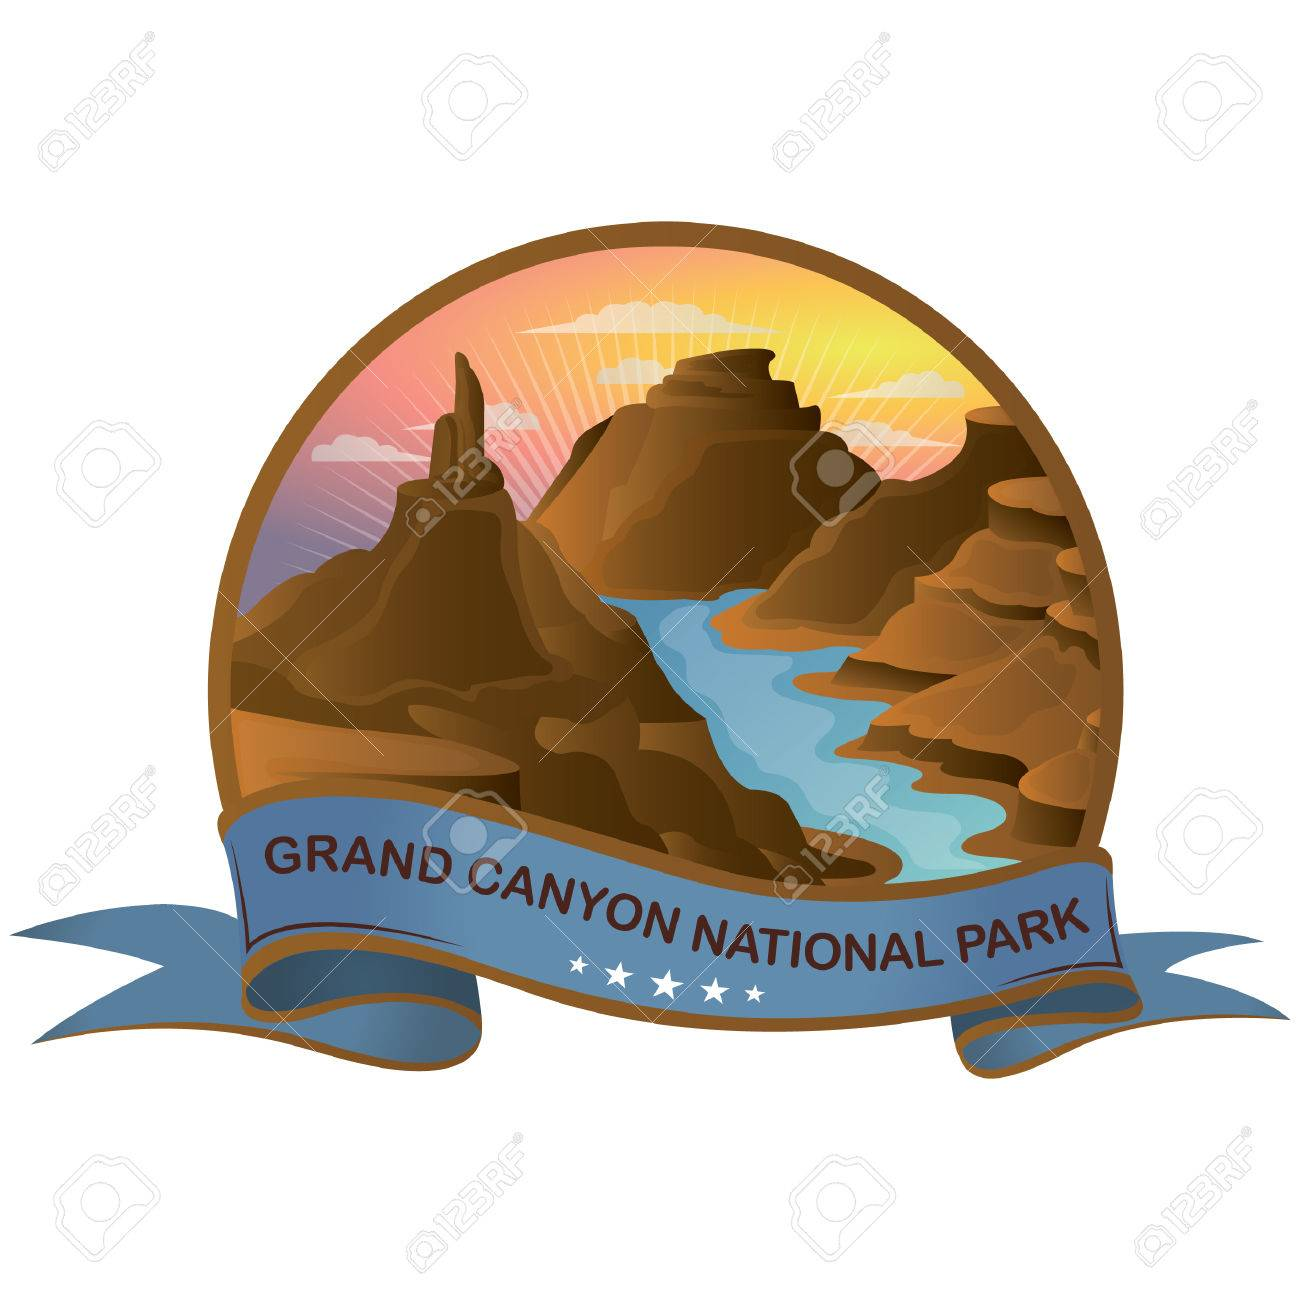 hight resolution of grand canyon national park stock vector 51366515